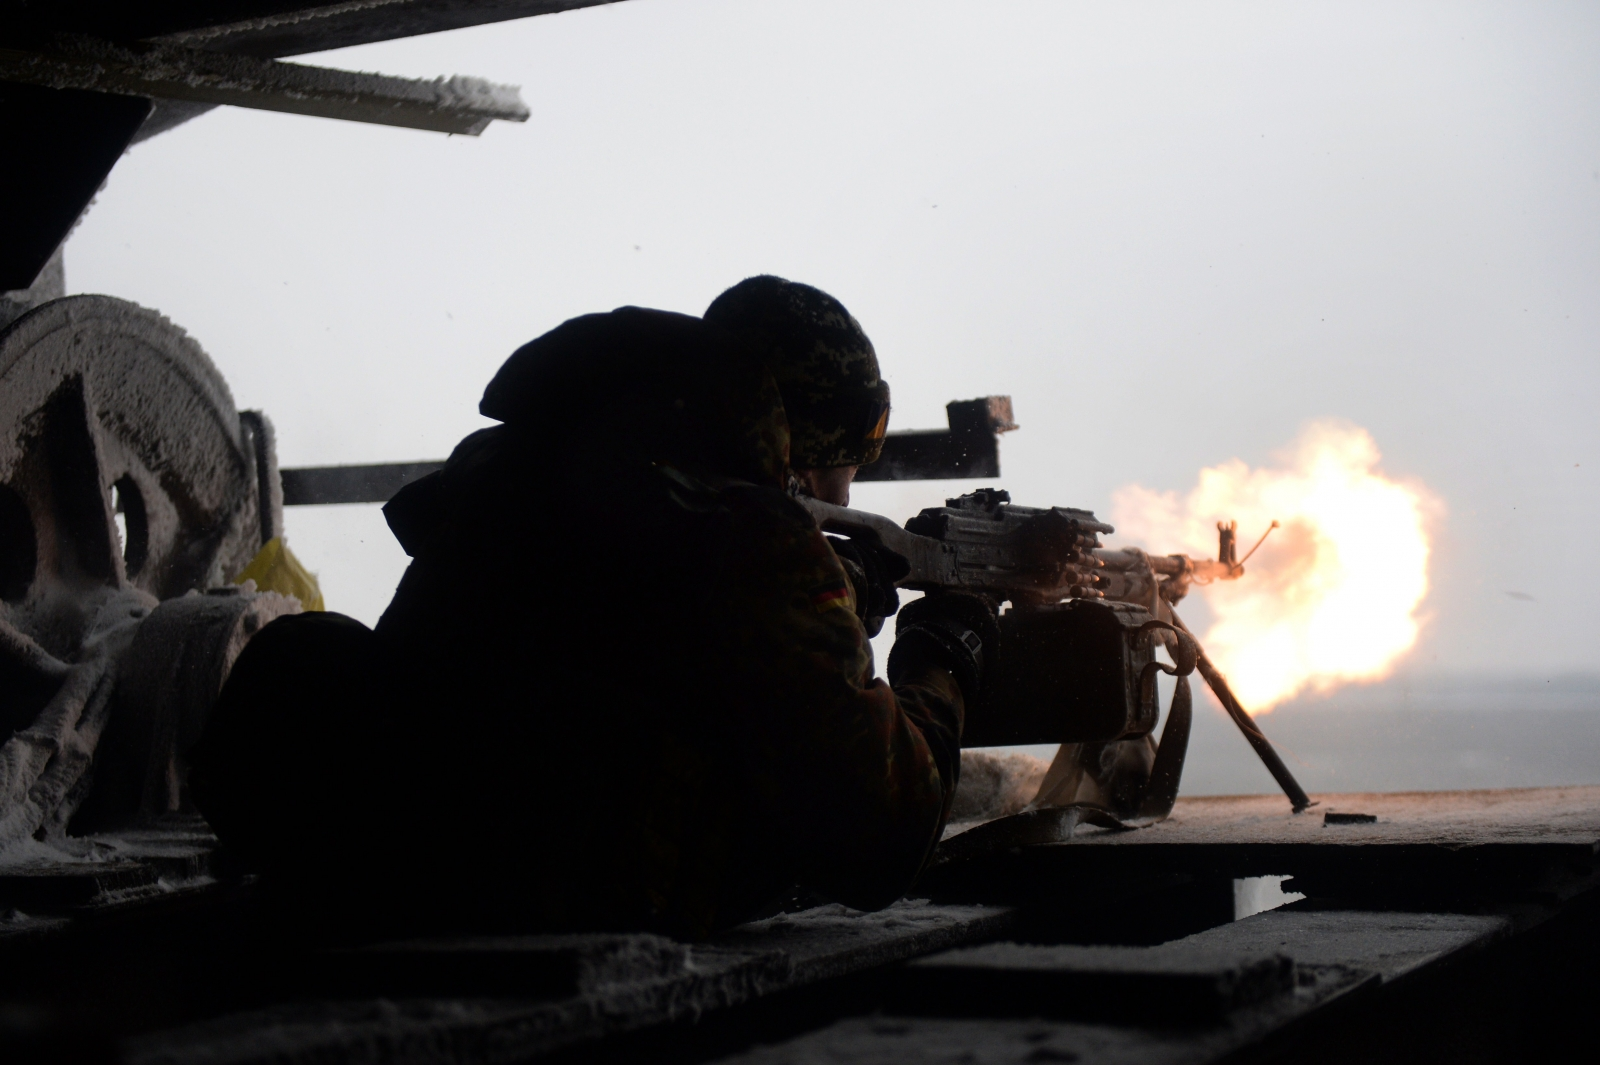 A Ukrainian volunteer fighter fires on a rebel position in Donetsk (Getty)